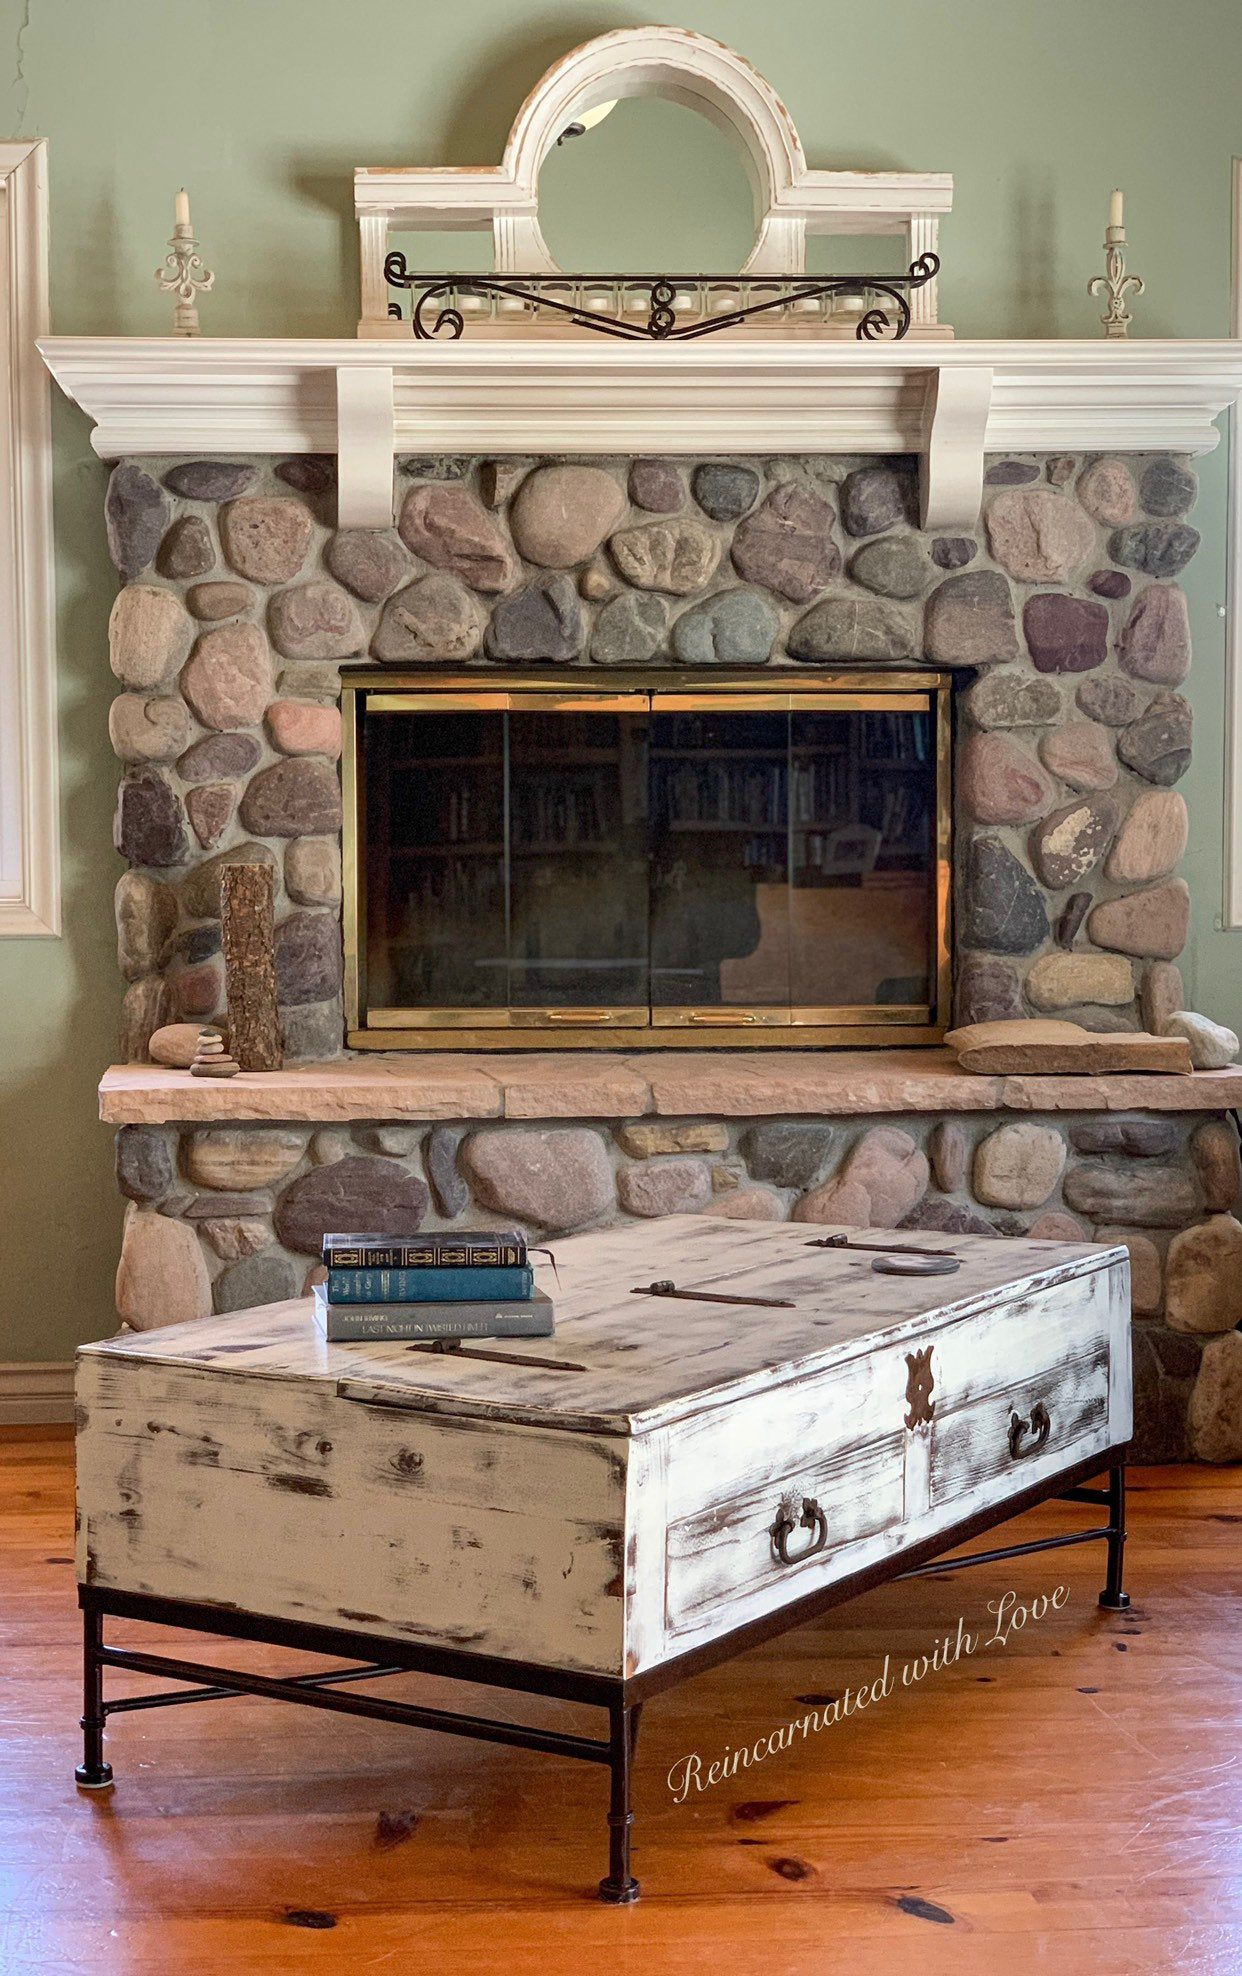 Lift Top Farmhouse Coffee Table Reclaimed Wood Wrought Iron Coffee Table In Rustic White Coffee Table Farmhouse Reclaimed Wood Coffee Table Shabby Chic Coffee Table [ 1976 x 1242 Pixel ]